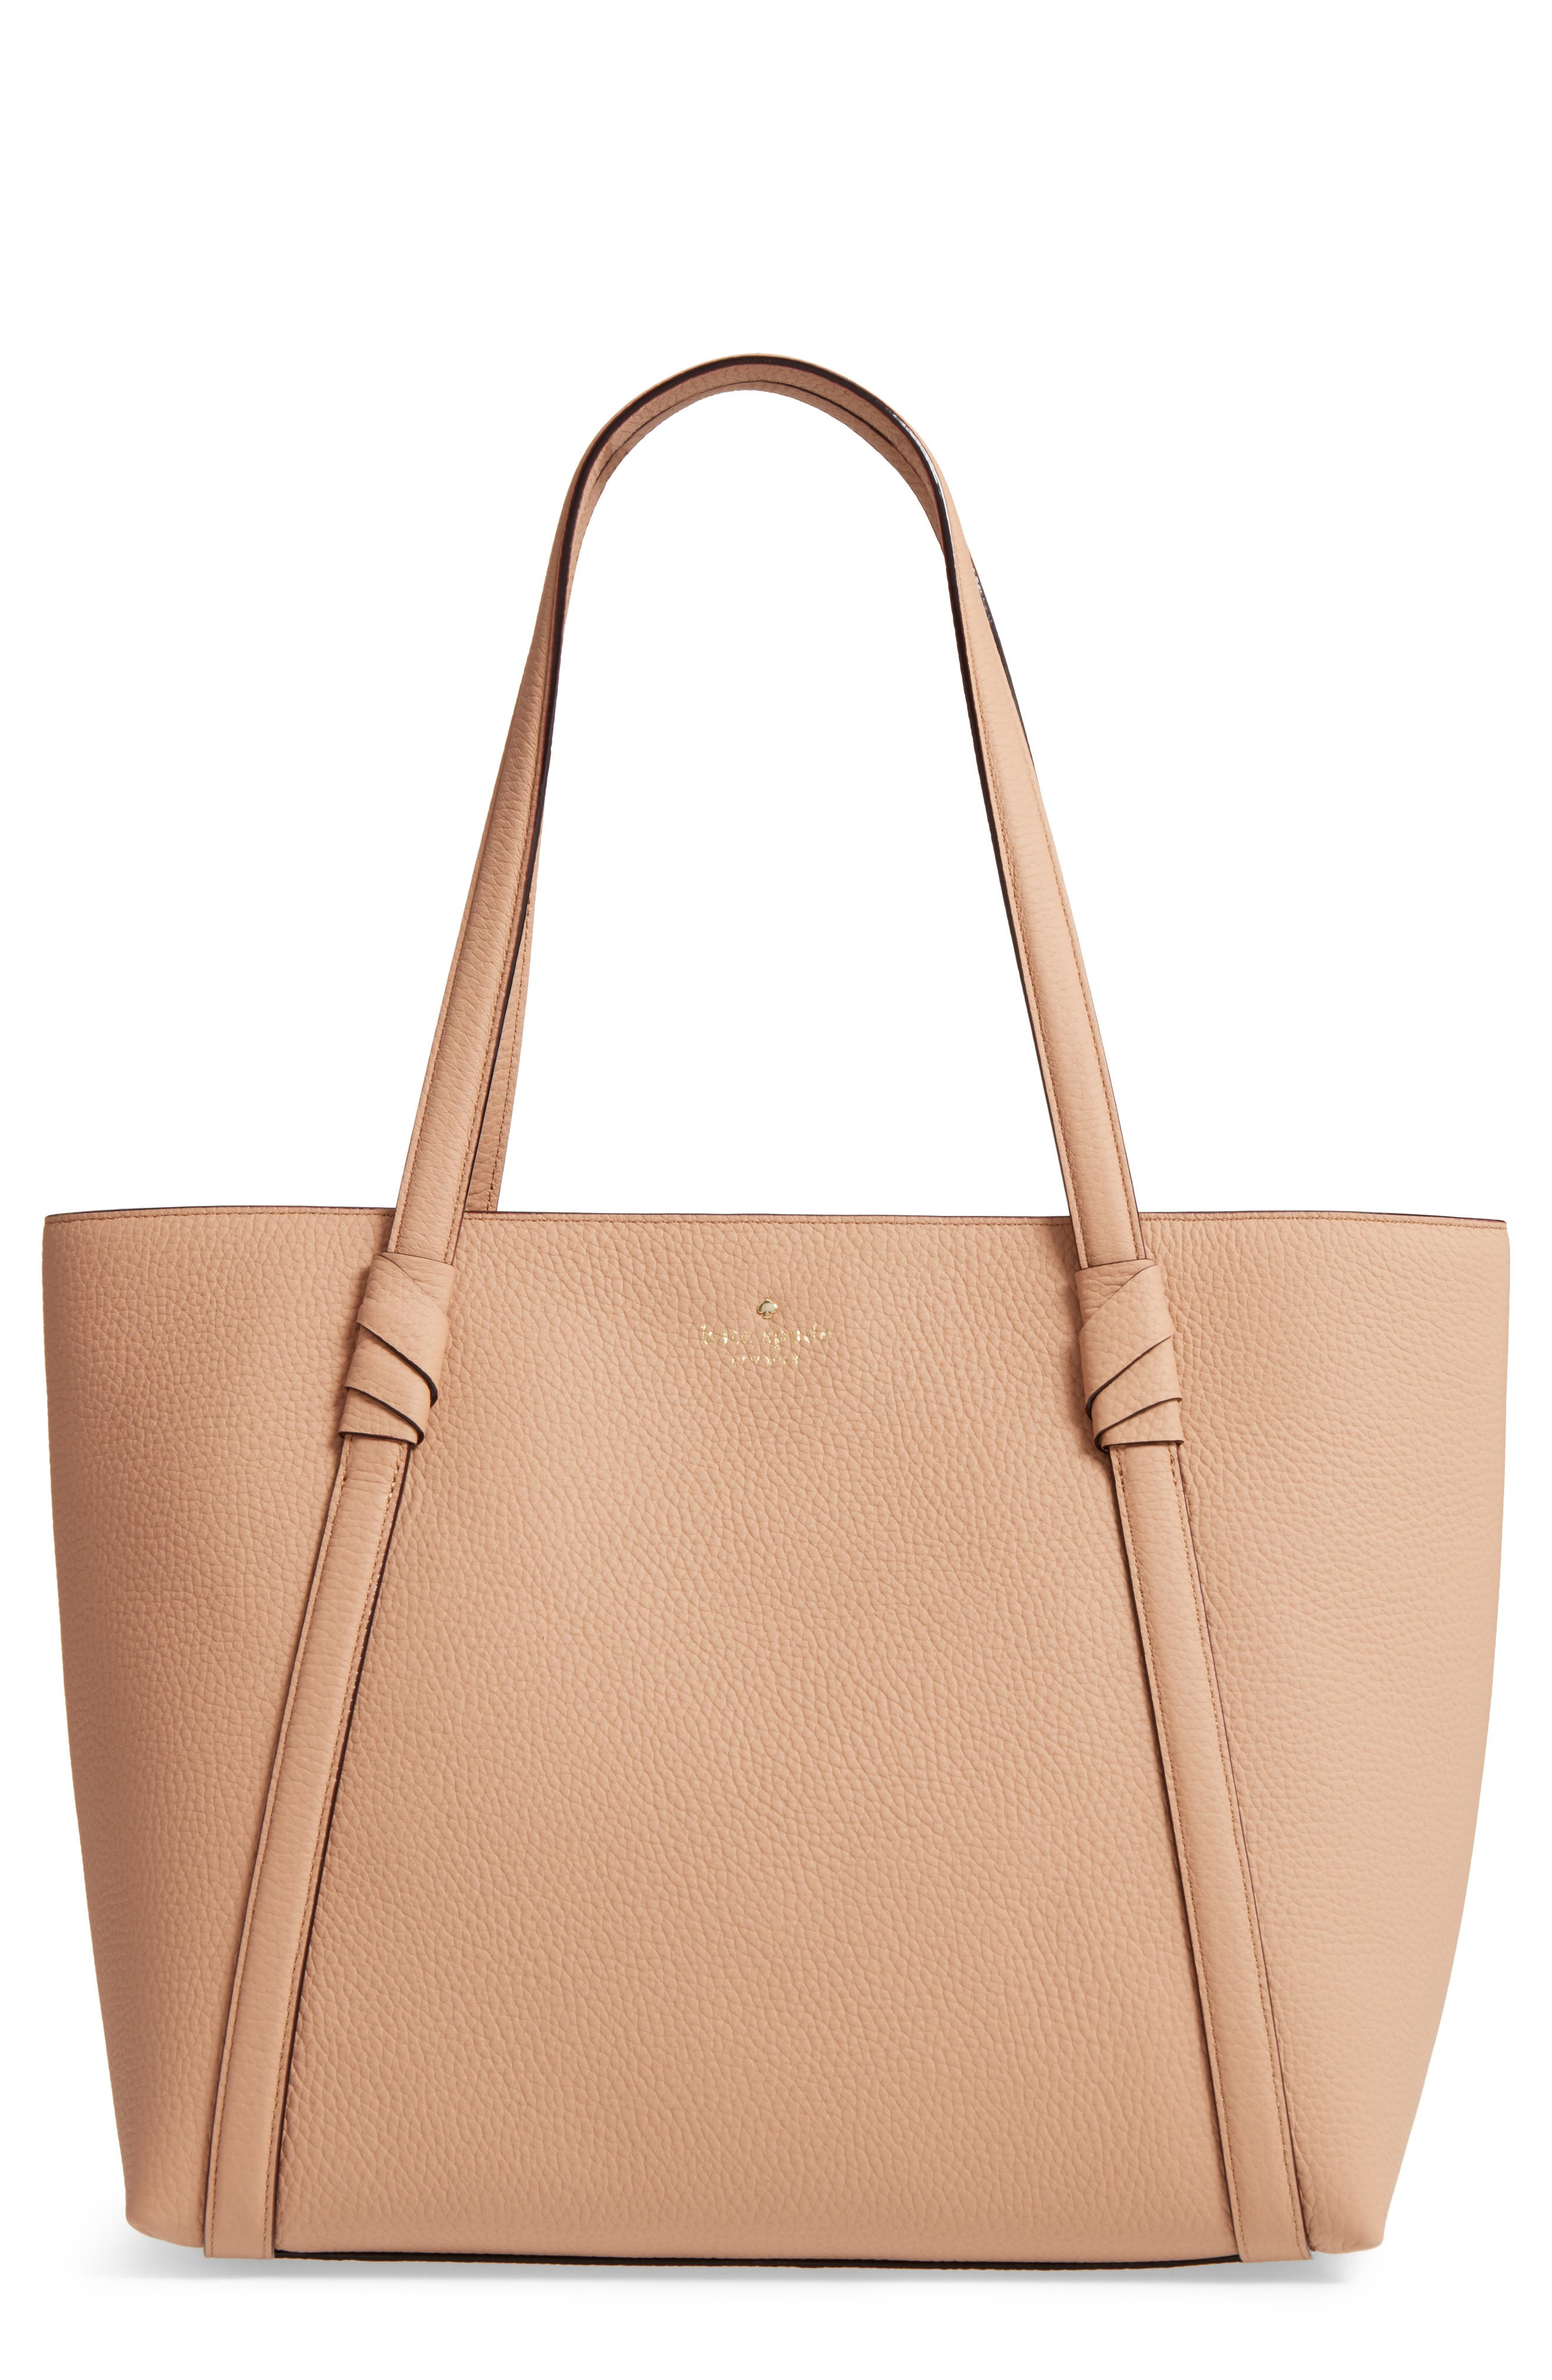 Alternate Image 1 Selected - kate spade new york daniels drive - cherie leather tote (Nordstrom Exclusive)